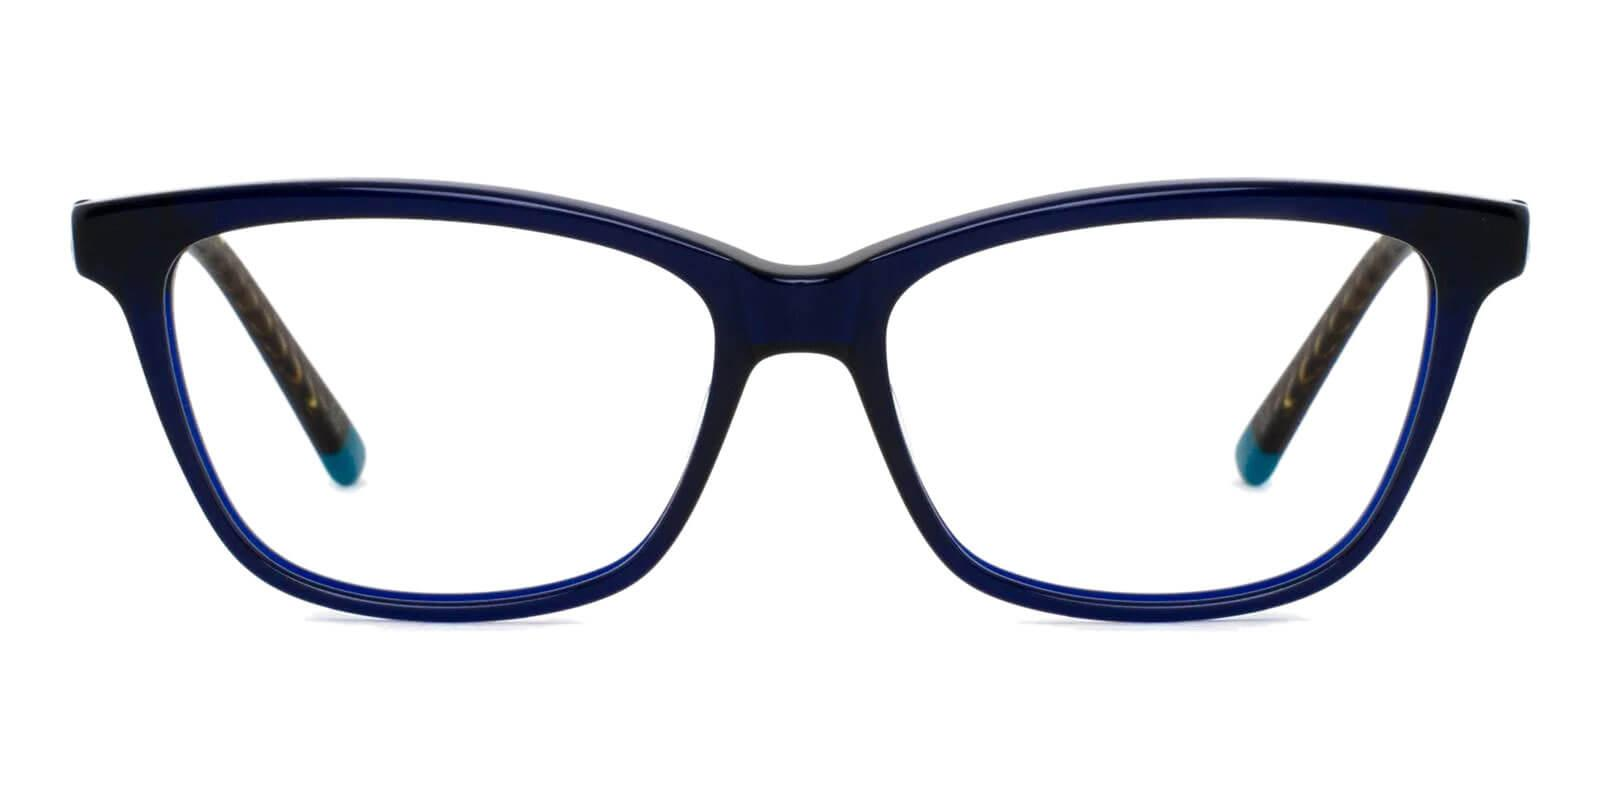 Estonia Blue Acetate Eyeglasses , SpringHinges , UniversalBridgeFit Frames from ABBE Glasses